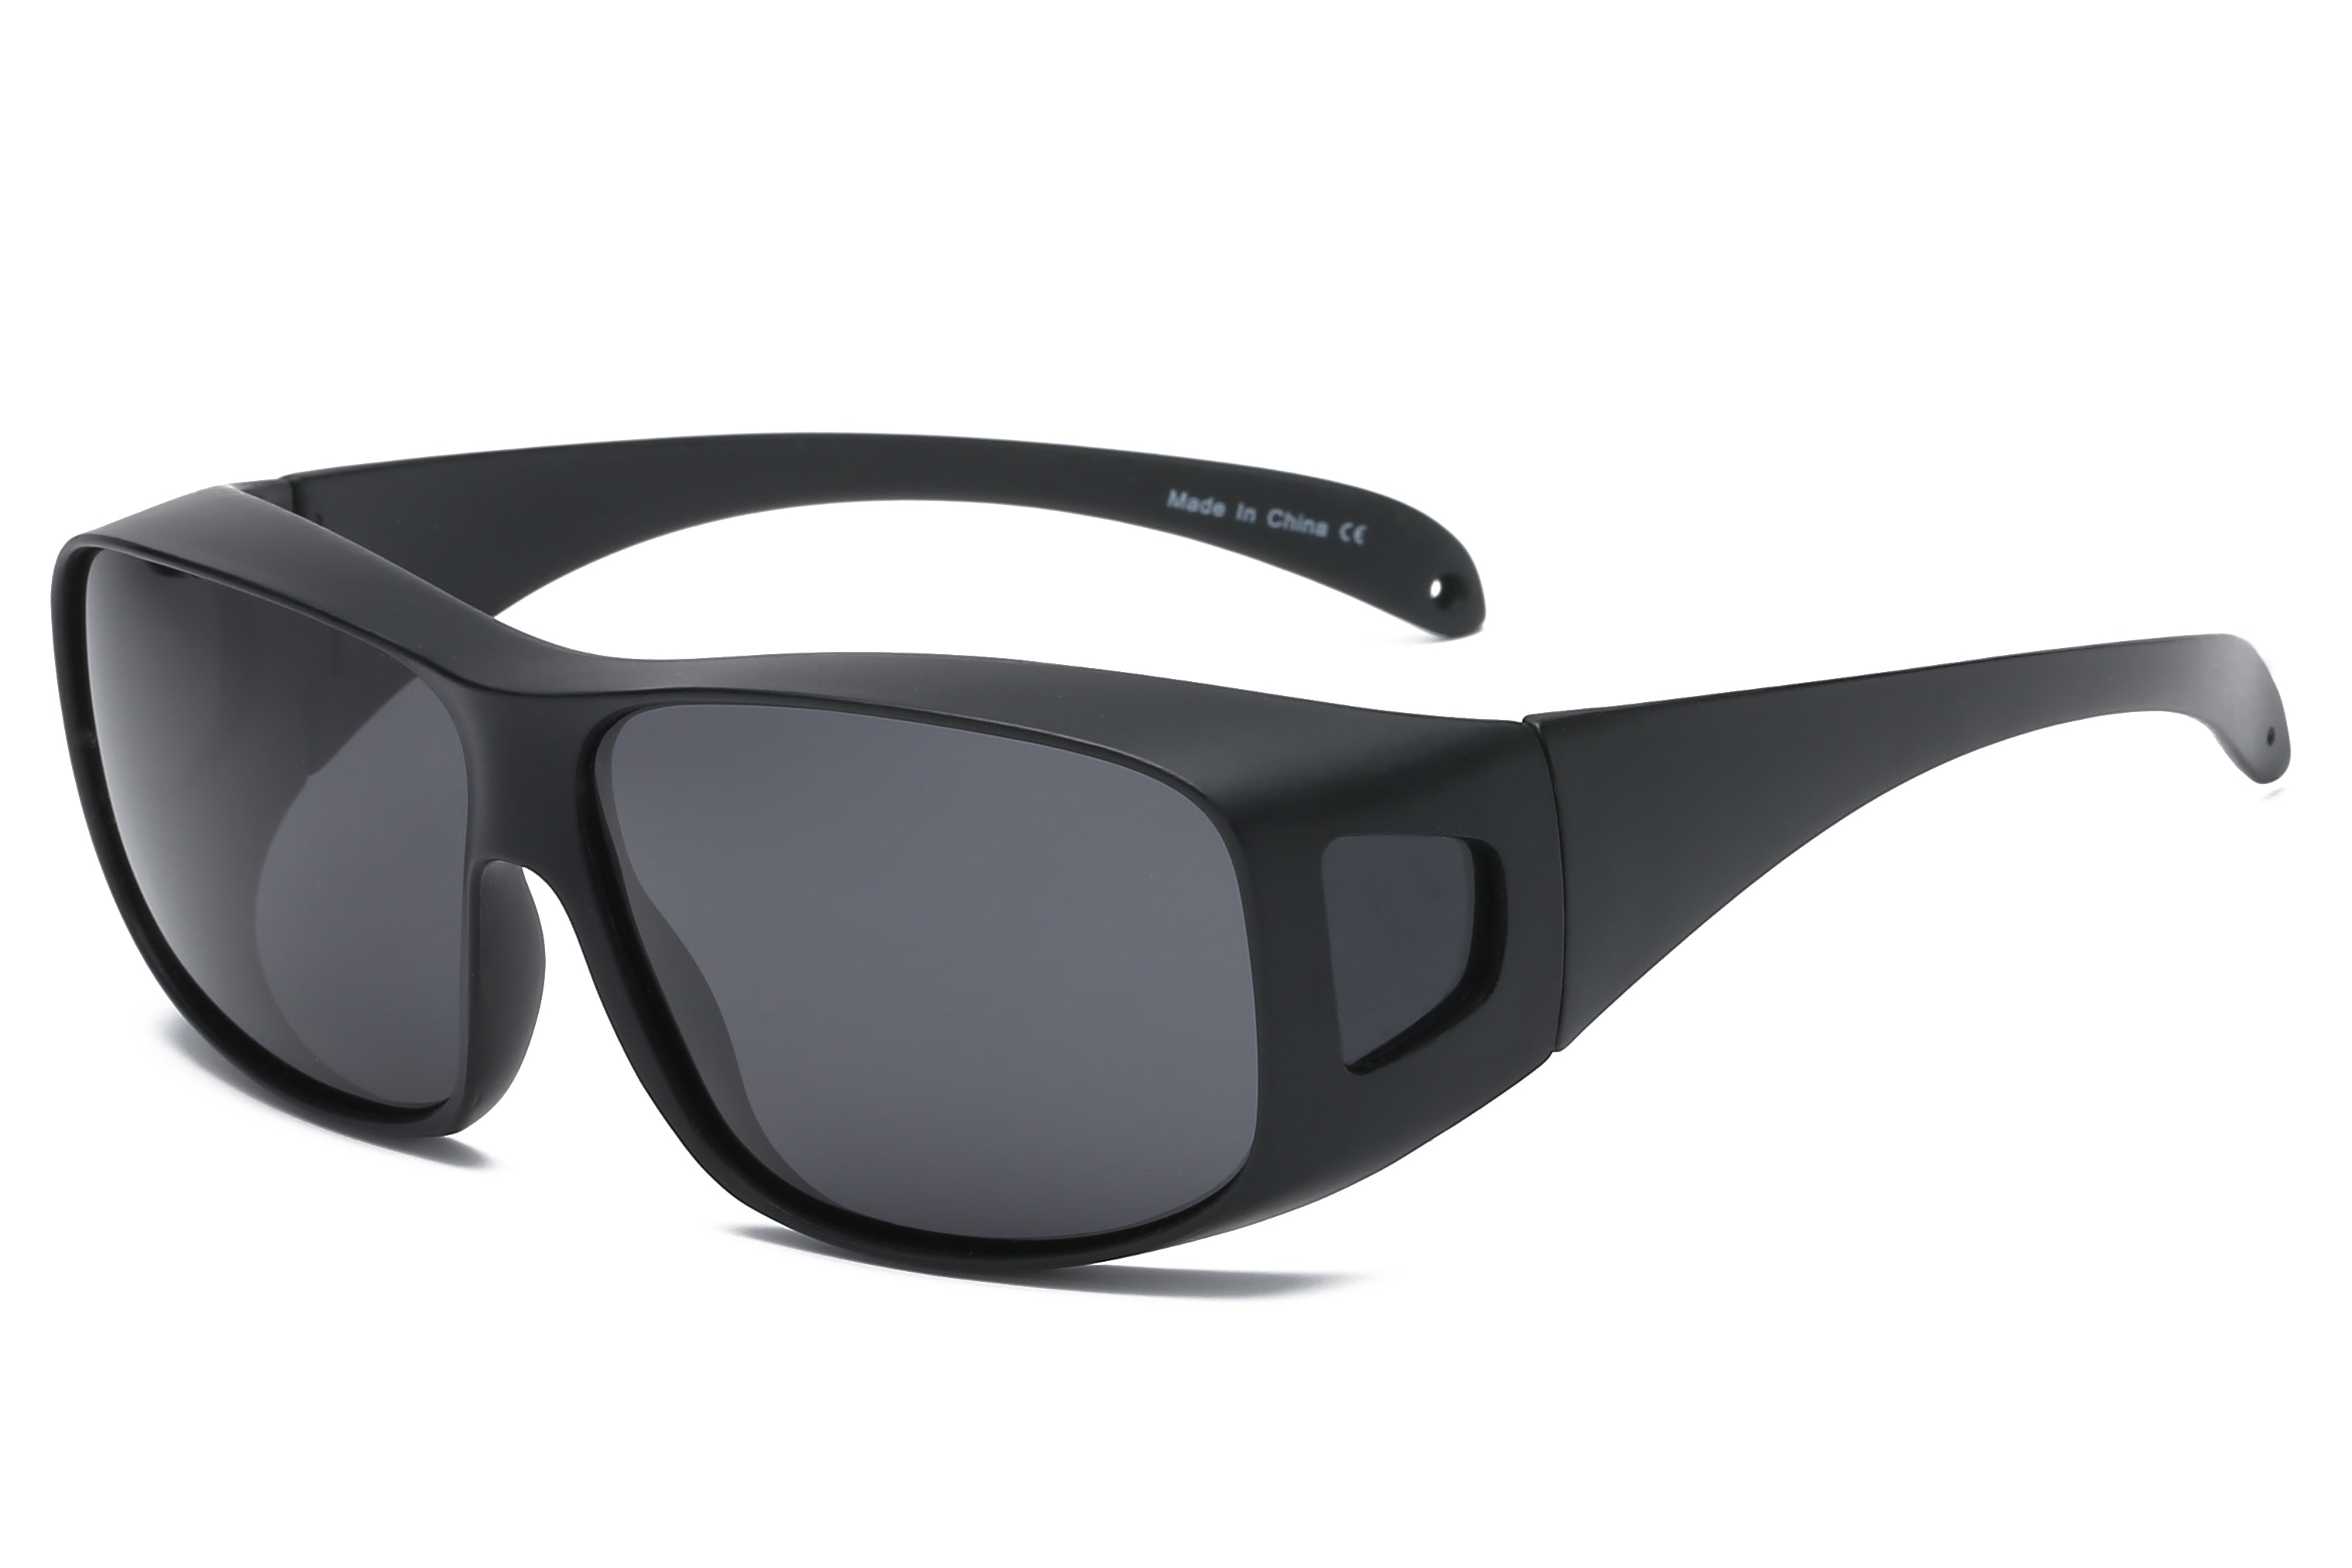 Men Retro Vintage Sports Shield Square Polarized HD Sunglasses - Black